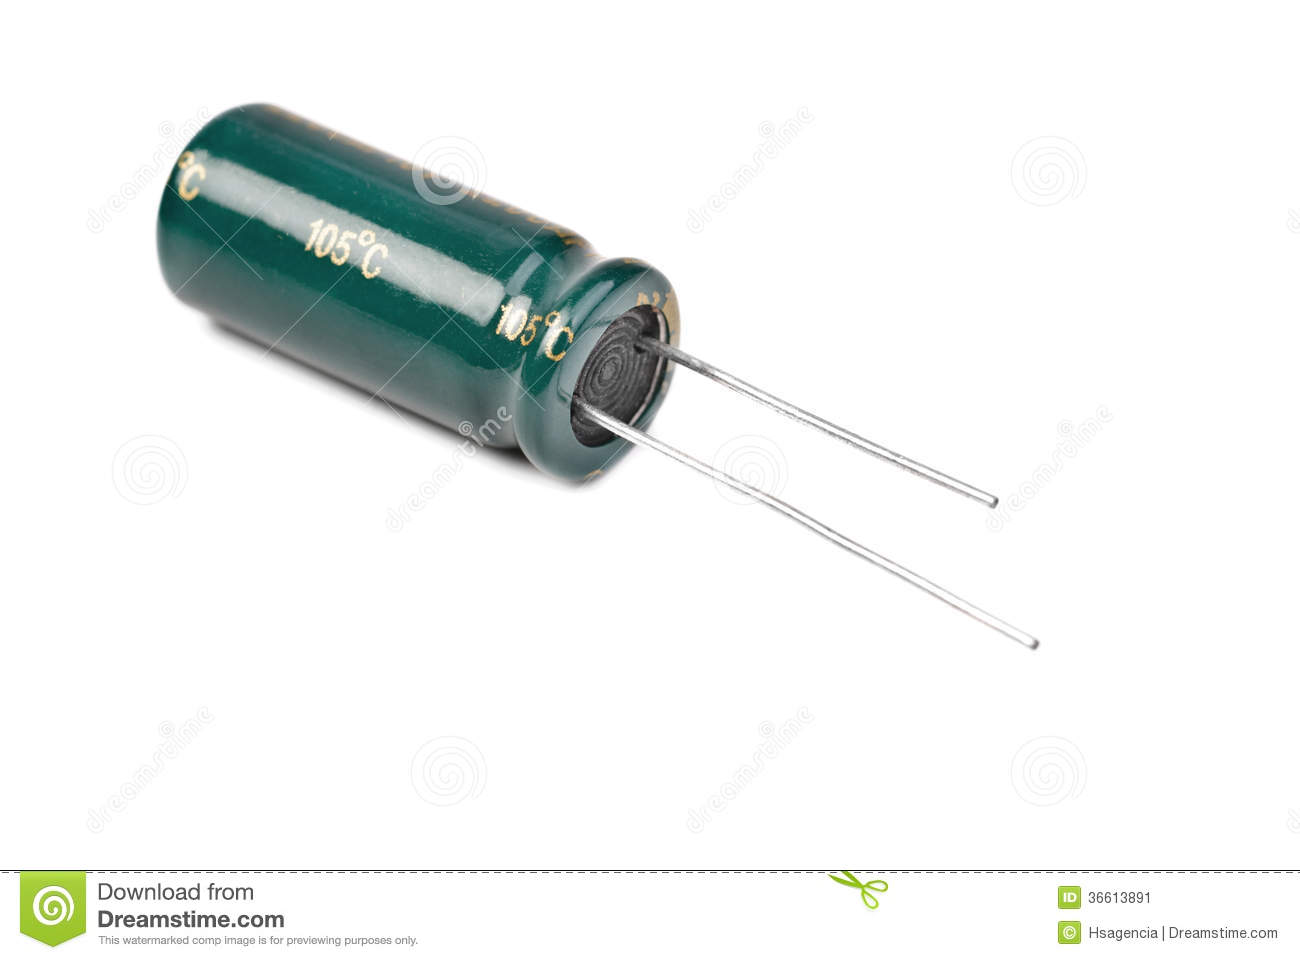 Electrolytic Capacitor in green